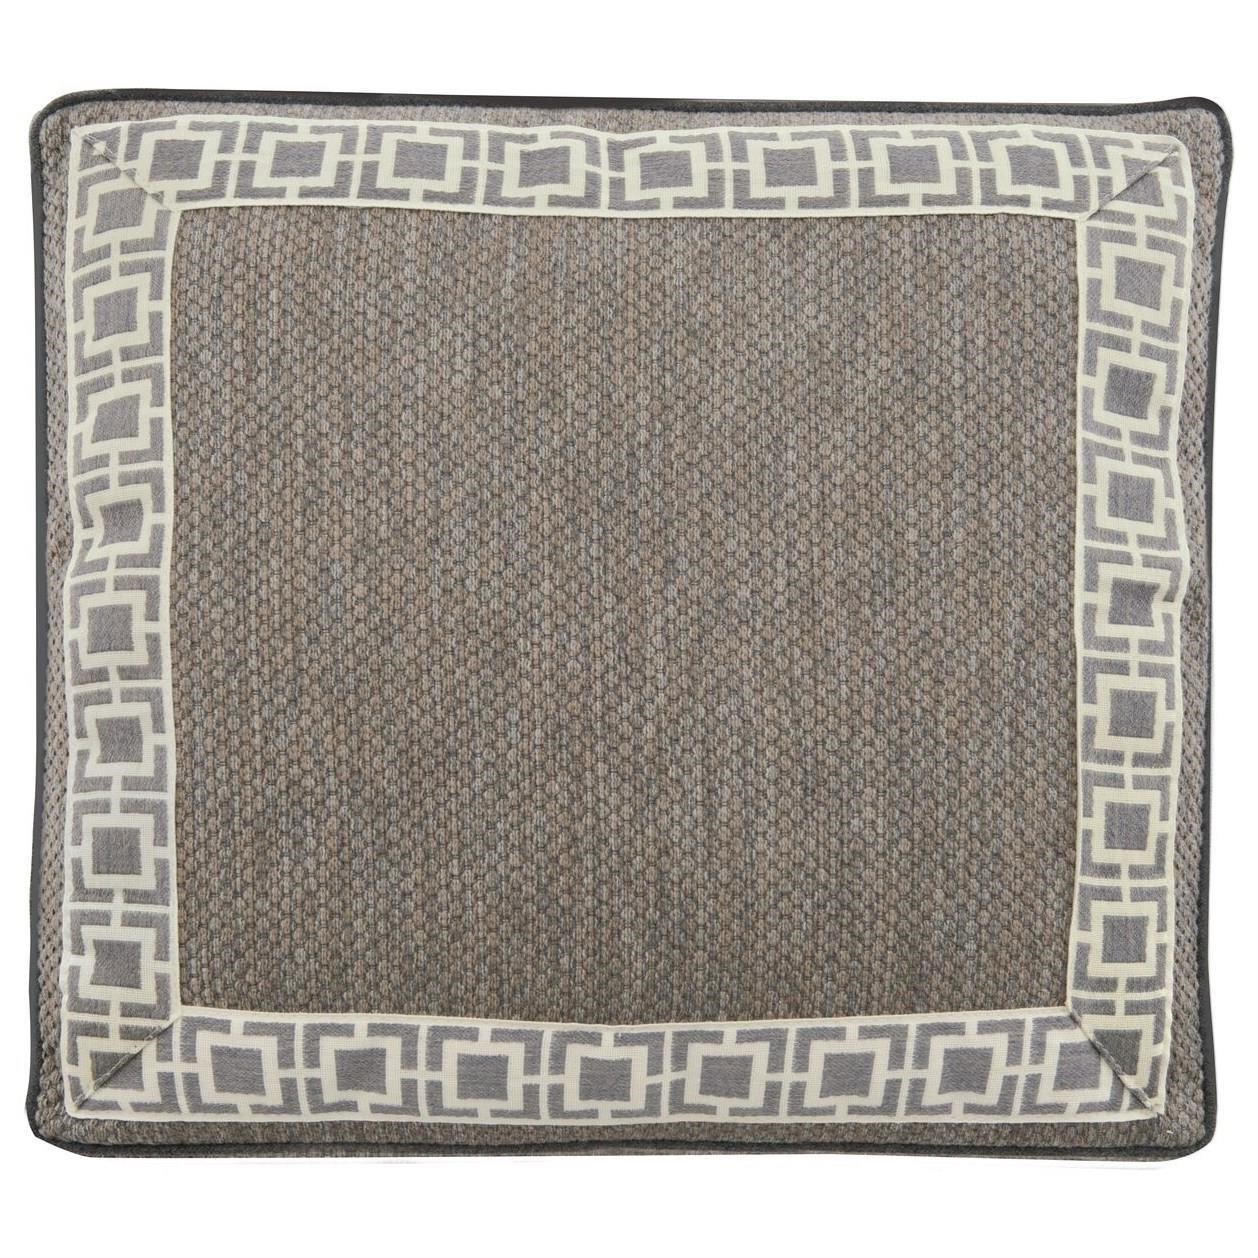 Exteriors - Accent Pillows Accent Pillow with Square Box Border at Williams & Kay